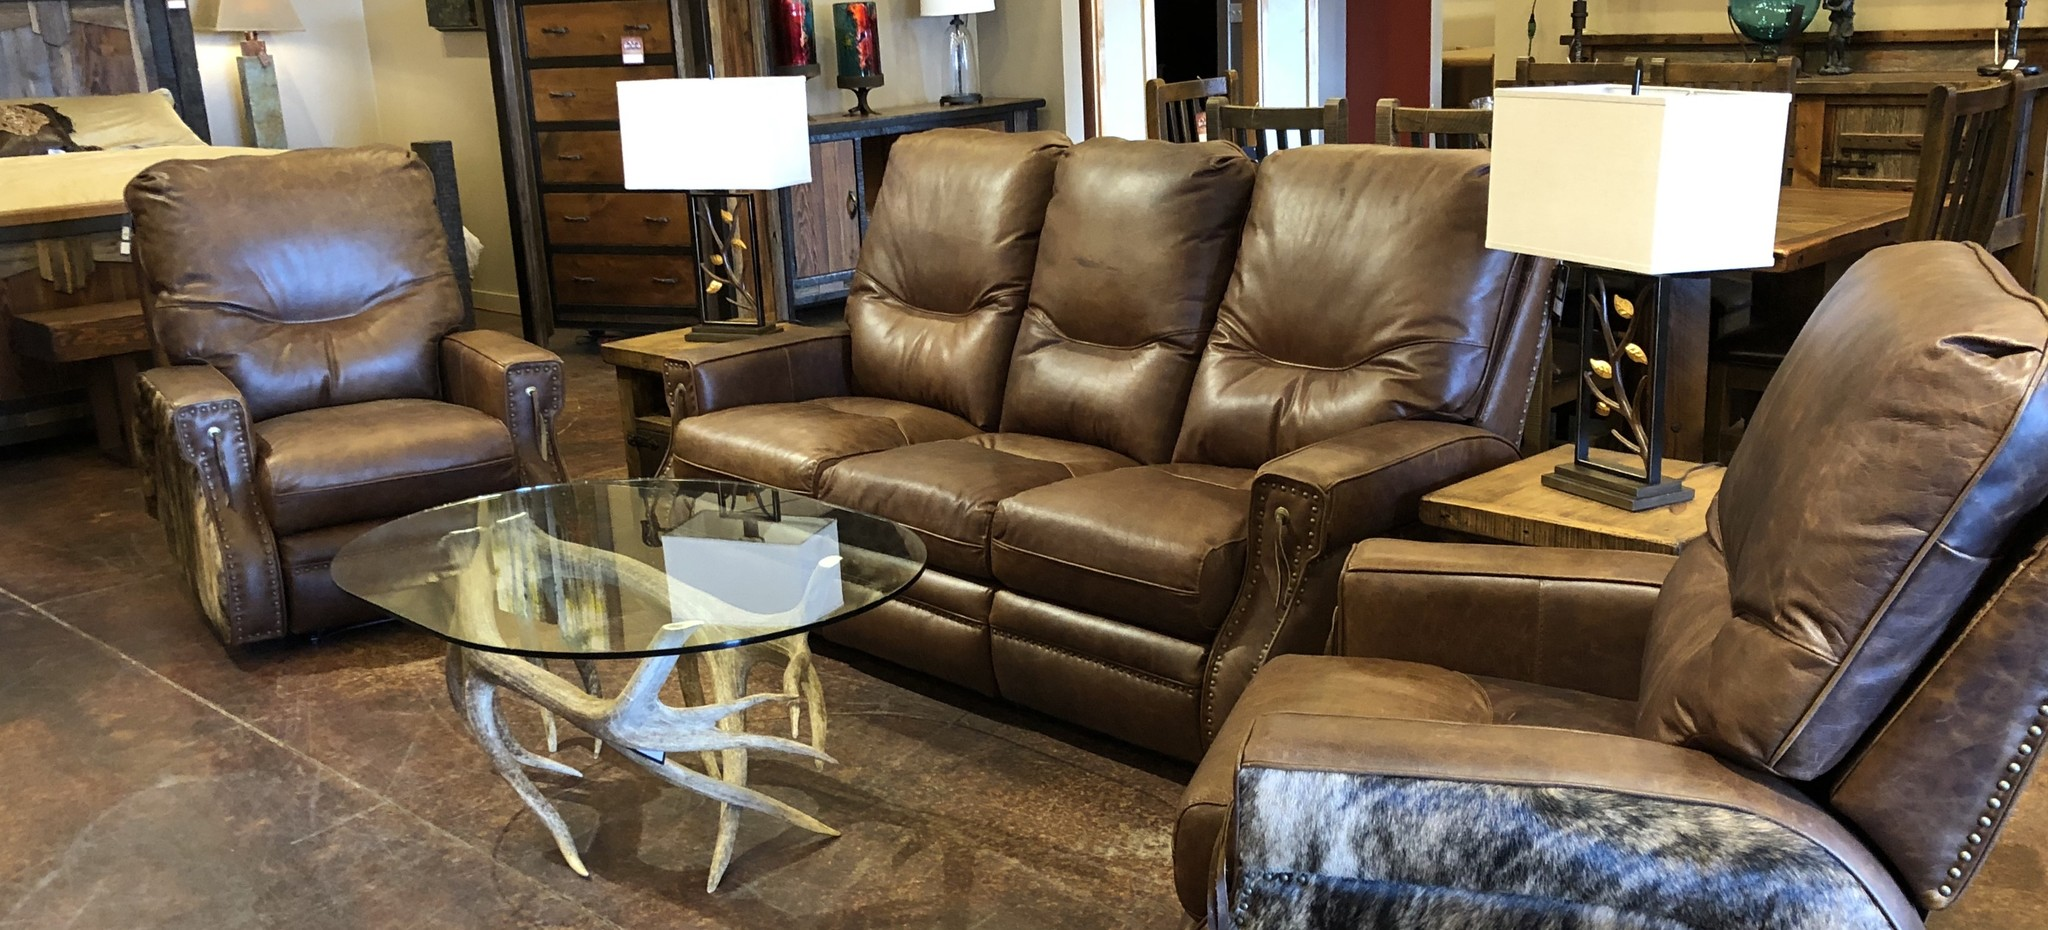 Shopping for Leather Furniture…